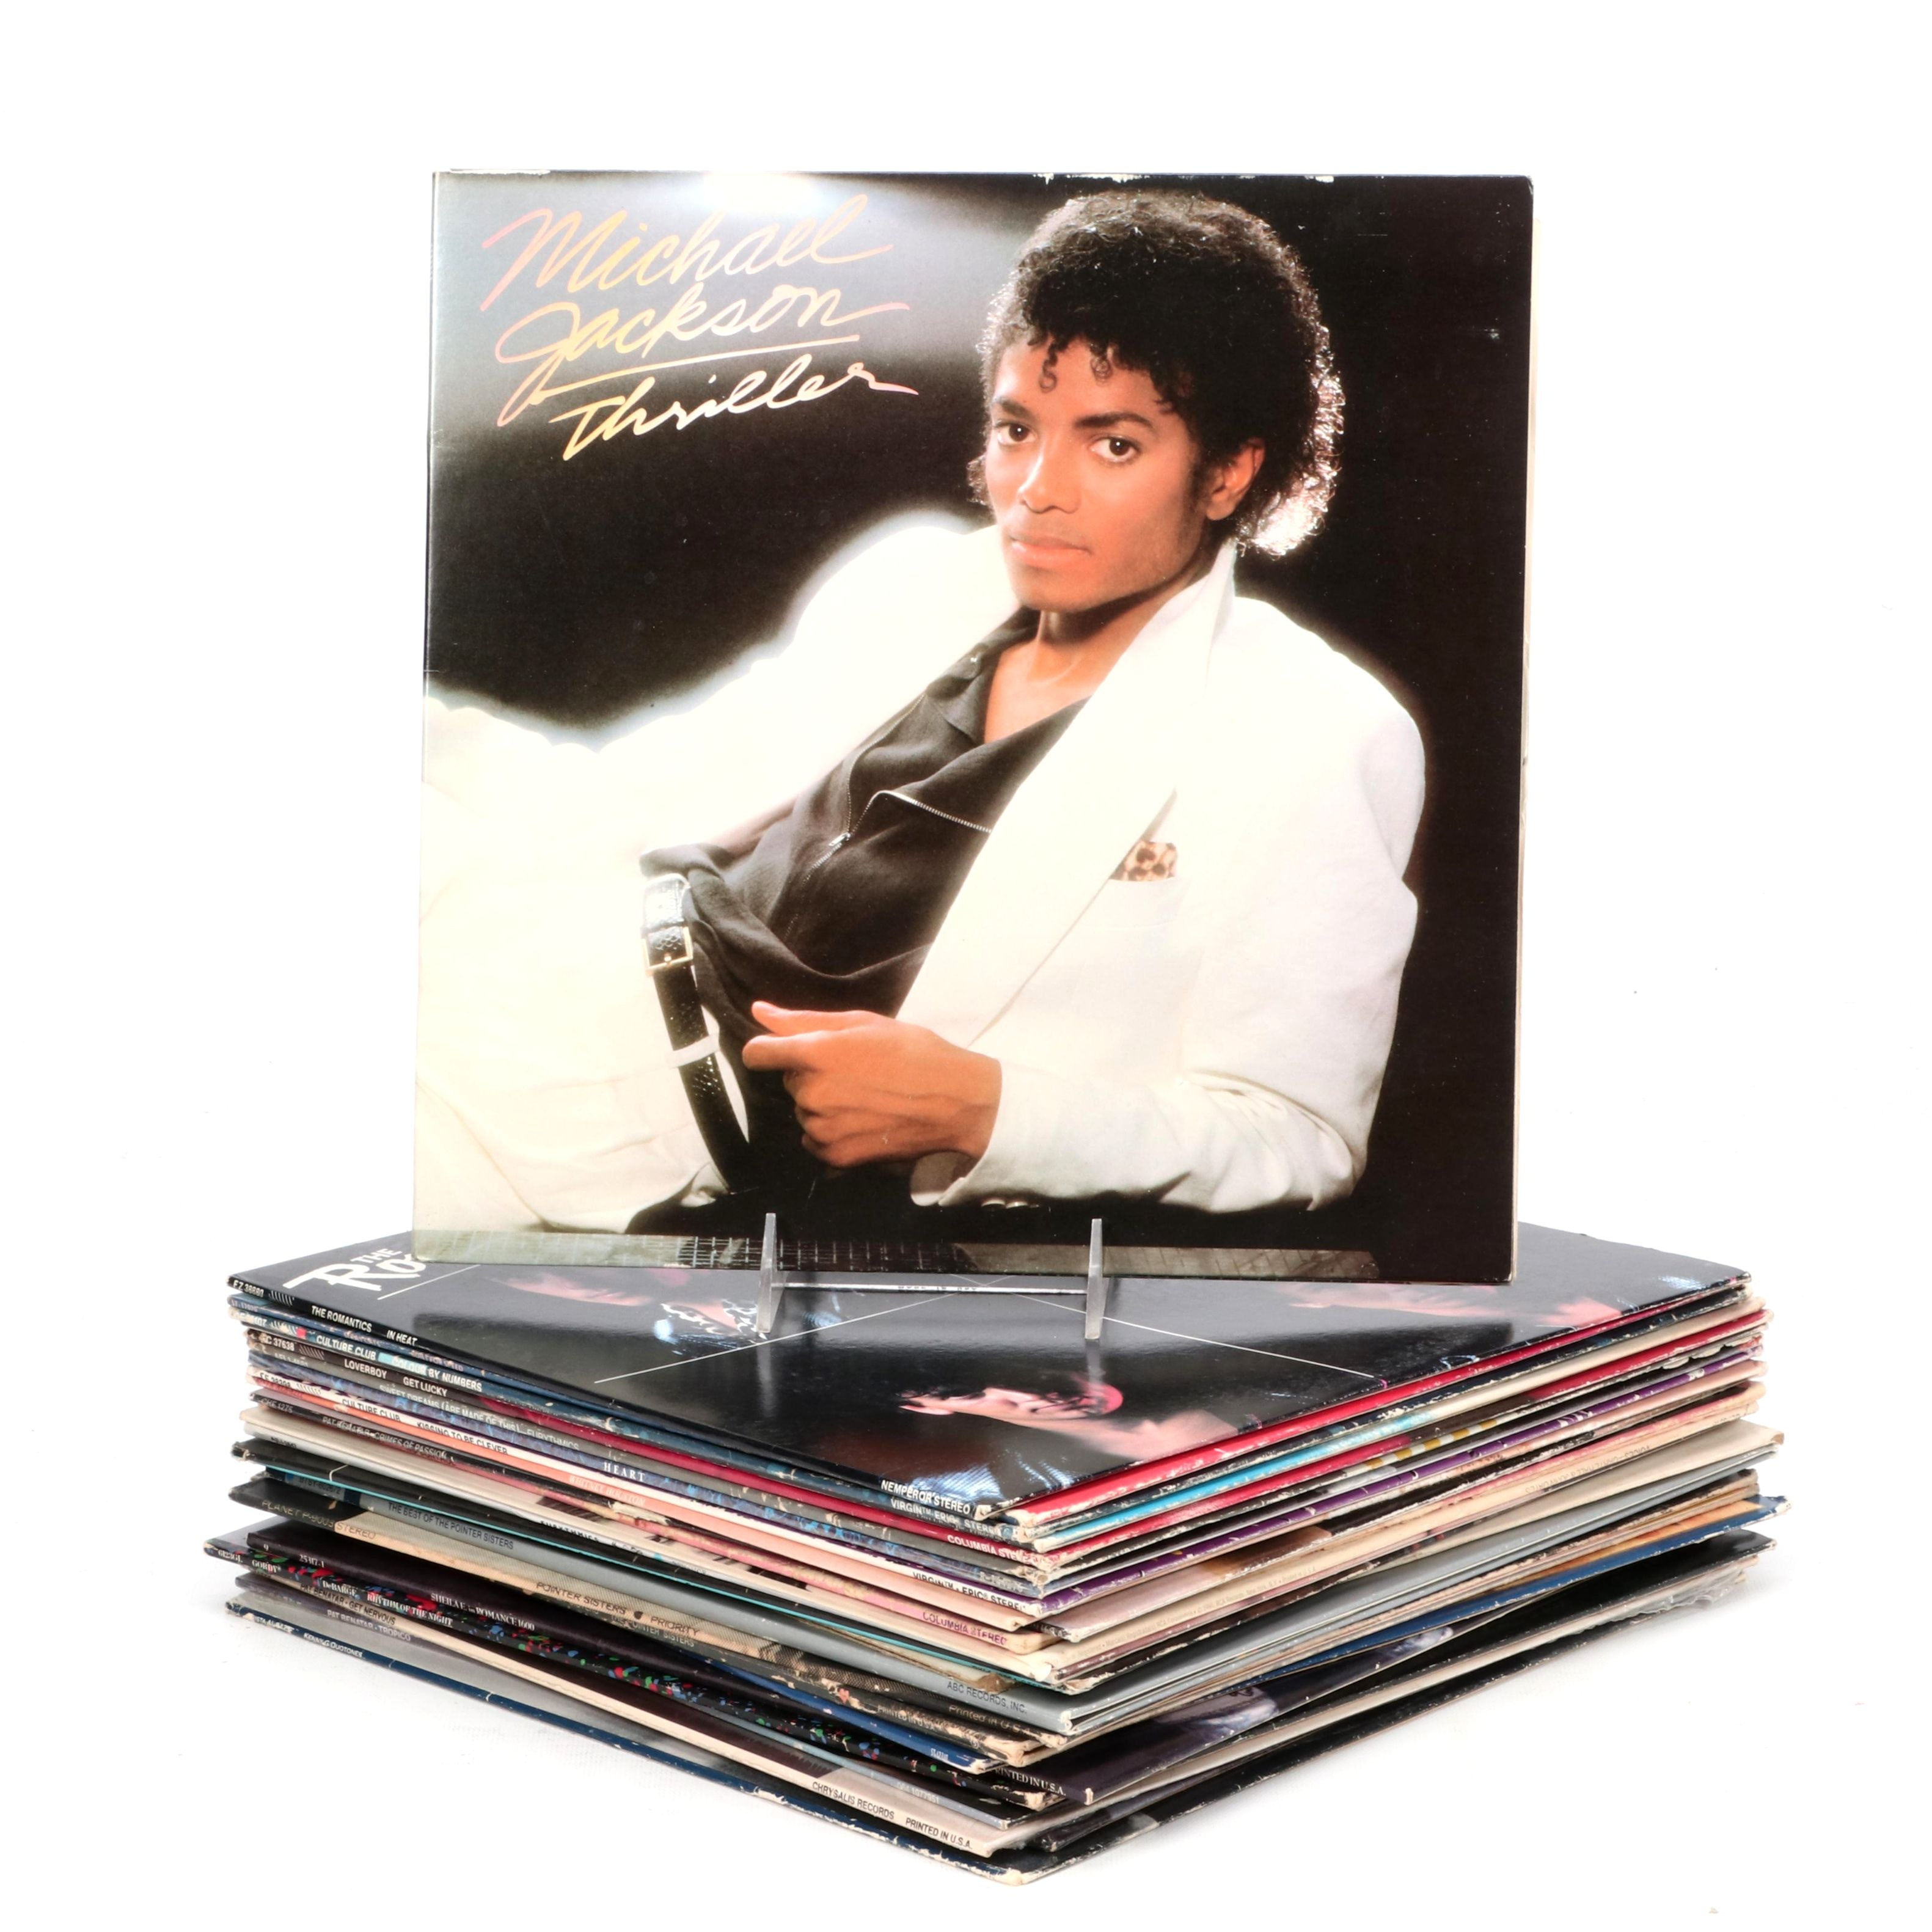 Early 1980s Rock and Pop LP Records including Michael Jackson Thriller